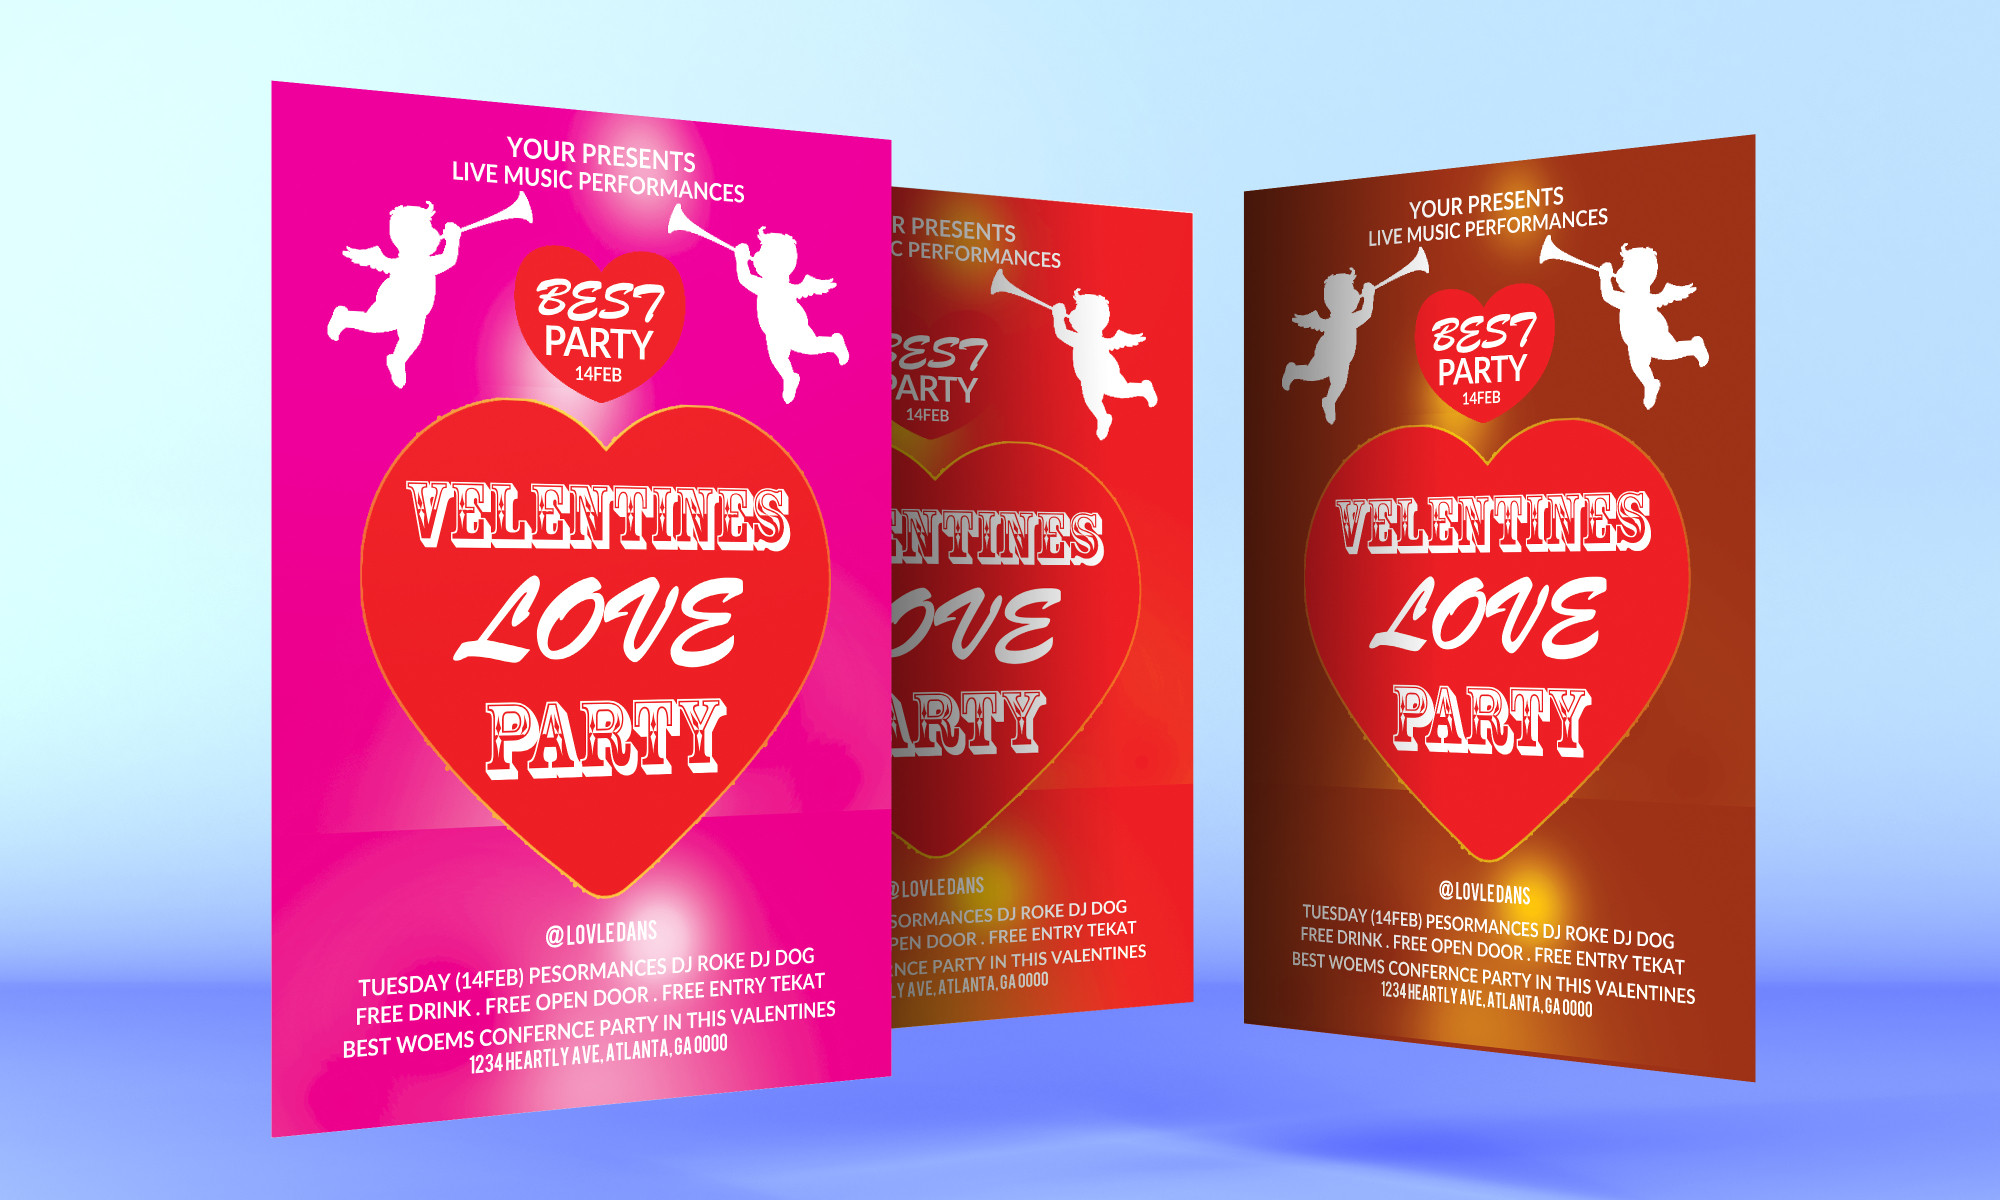 Valentines Love Party example image 1